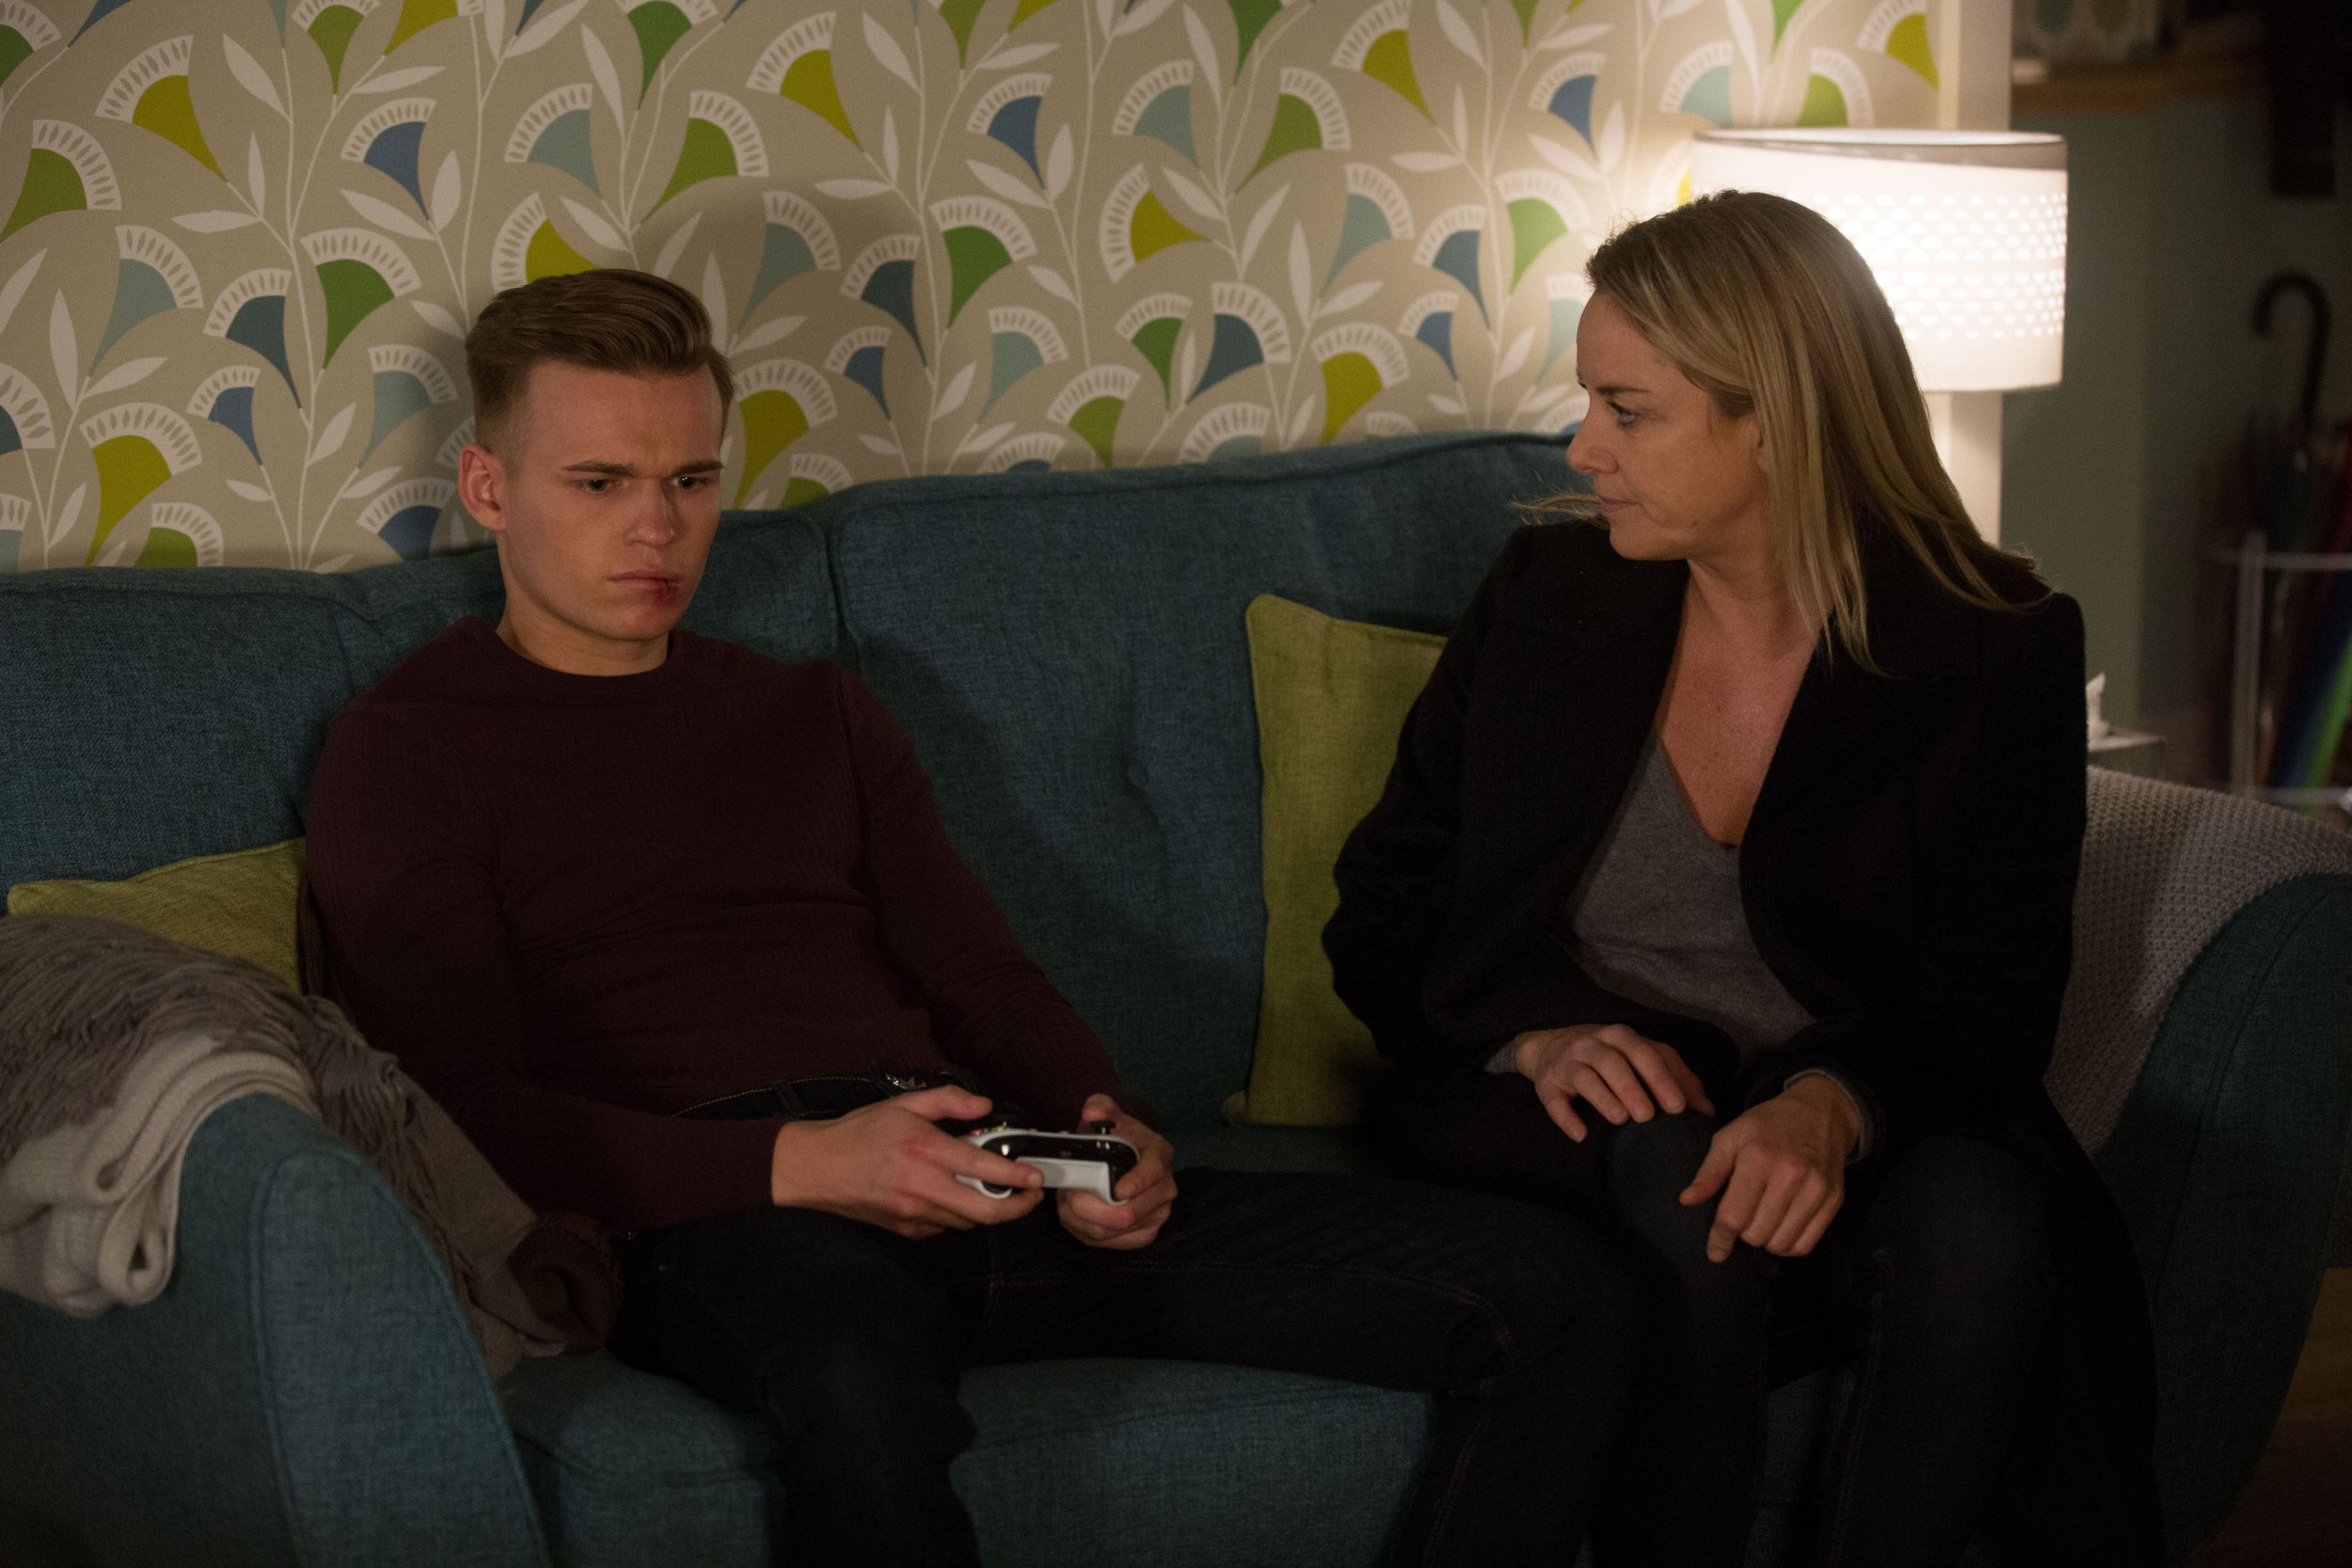 WARNING: Embargoed for publication until 00:00:01 on 22/01/2019 - Programme Name: EastEnders - January - March 2019 - TX: 29/01/2019 - Episode: EastEnders - January - March - 2019 - 5859 (No. 5859) - Picture Shows: *STRICTLY NOT FOR PUBLICATION UNTIL 00:01HRS TUESDAY 22nd JANUARY 2019* Mel checks in on Hunter Hunter Owen (CHARLIE WINTER), Melanie Owen (TAMZIN OUTHWAITE) - (C) BBC - Photographer: Jack Barnes